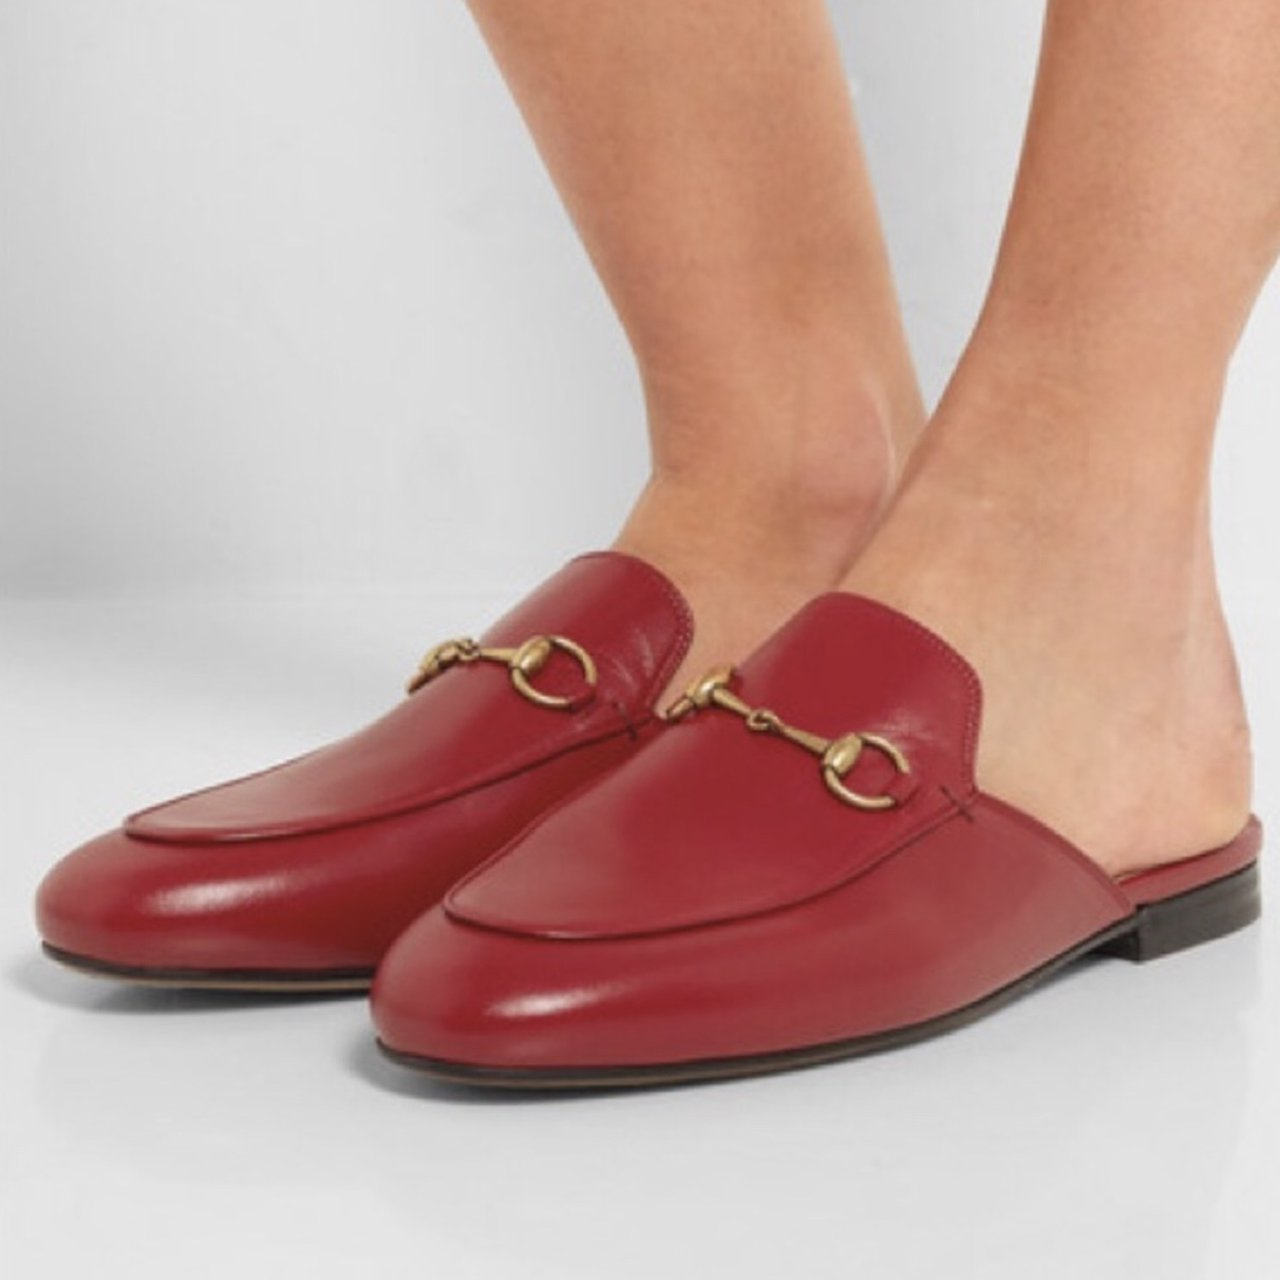 8f161798590 Gucci Princetown Red Slipper Loafers size 39. Used. Some of - Depop